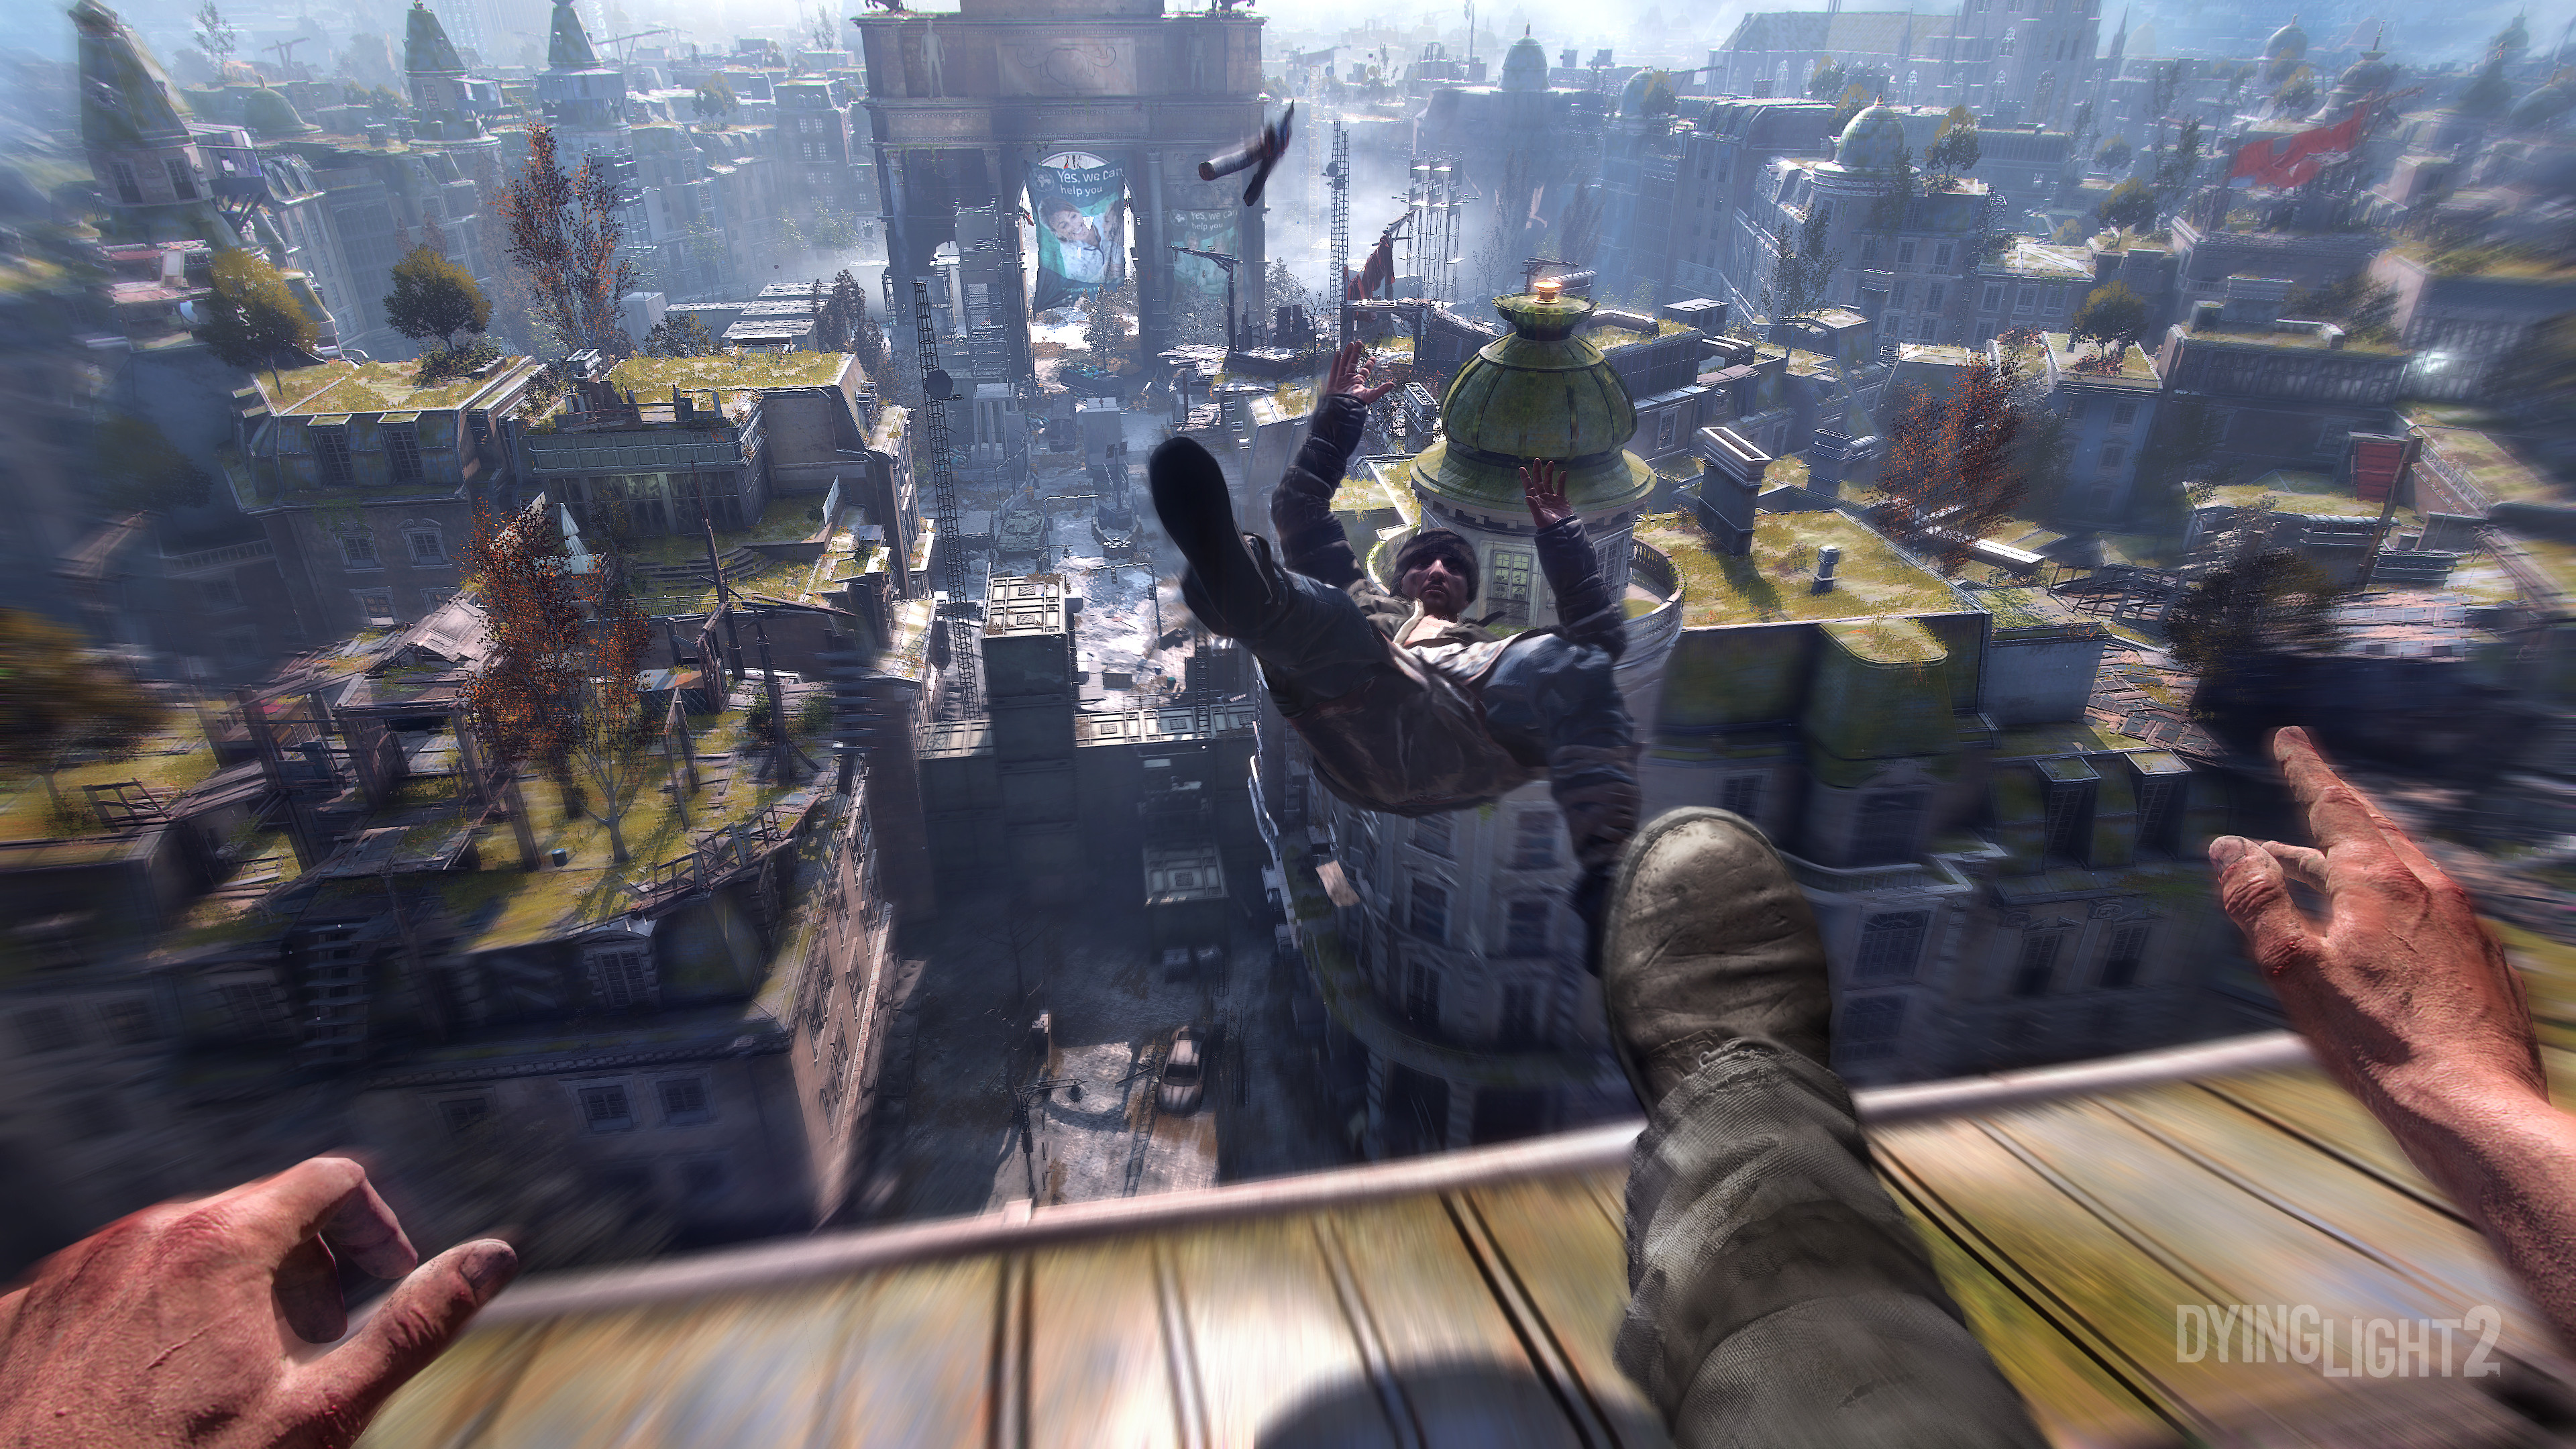 Watch 26 Minutes of Dying Light 2 Gameplay with Commentary